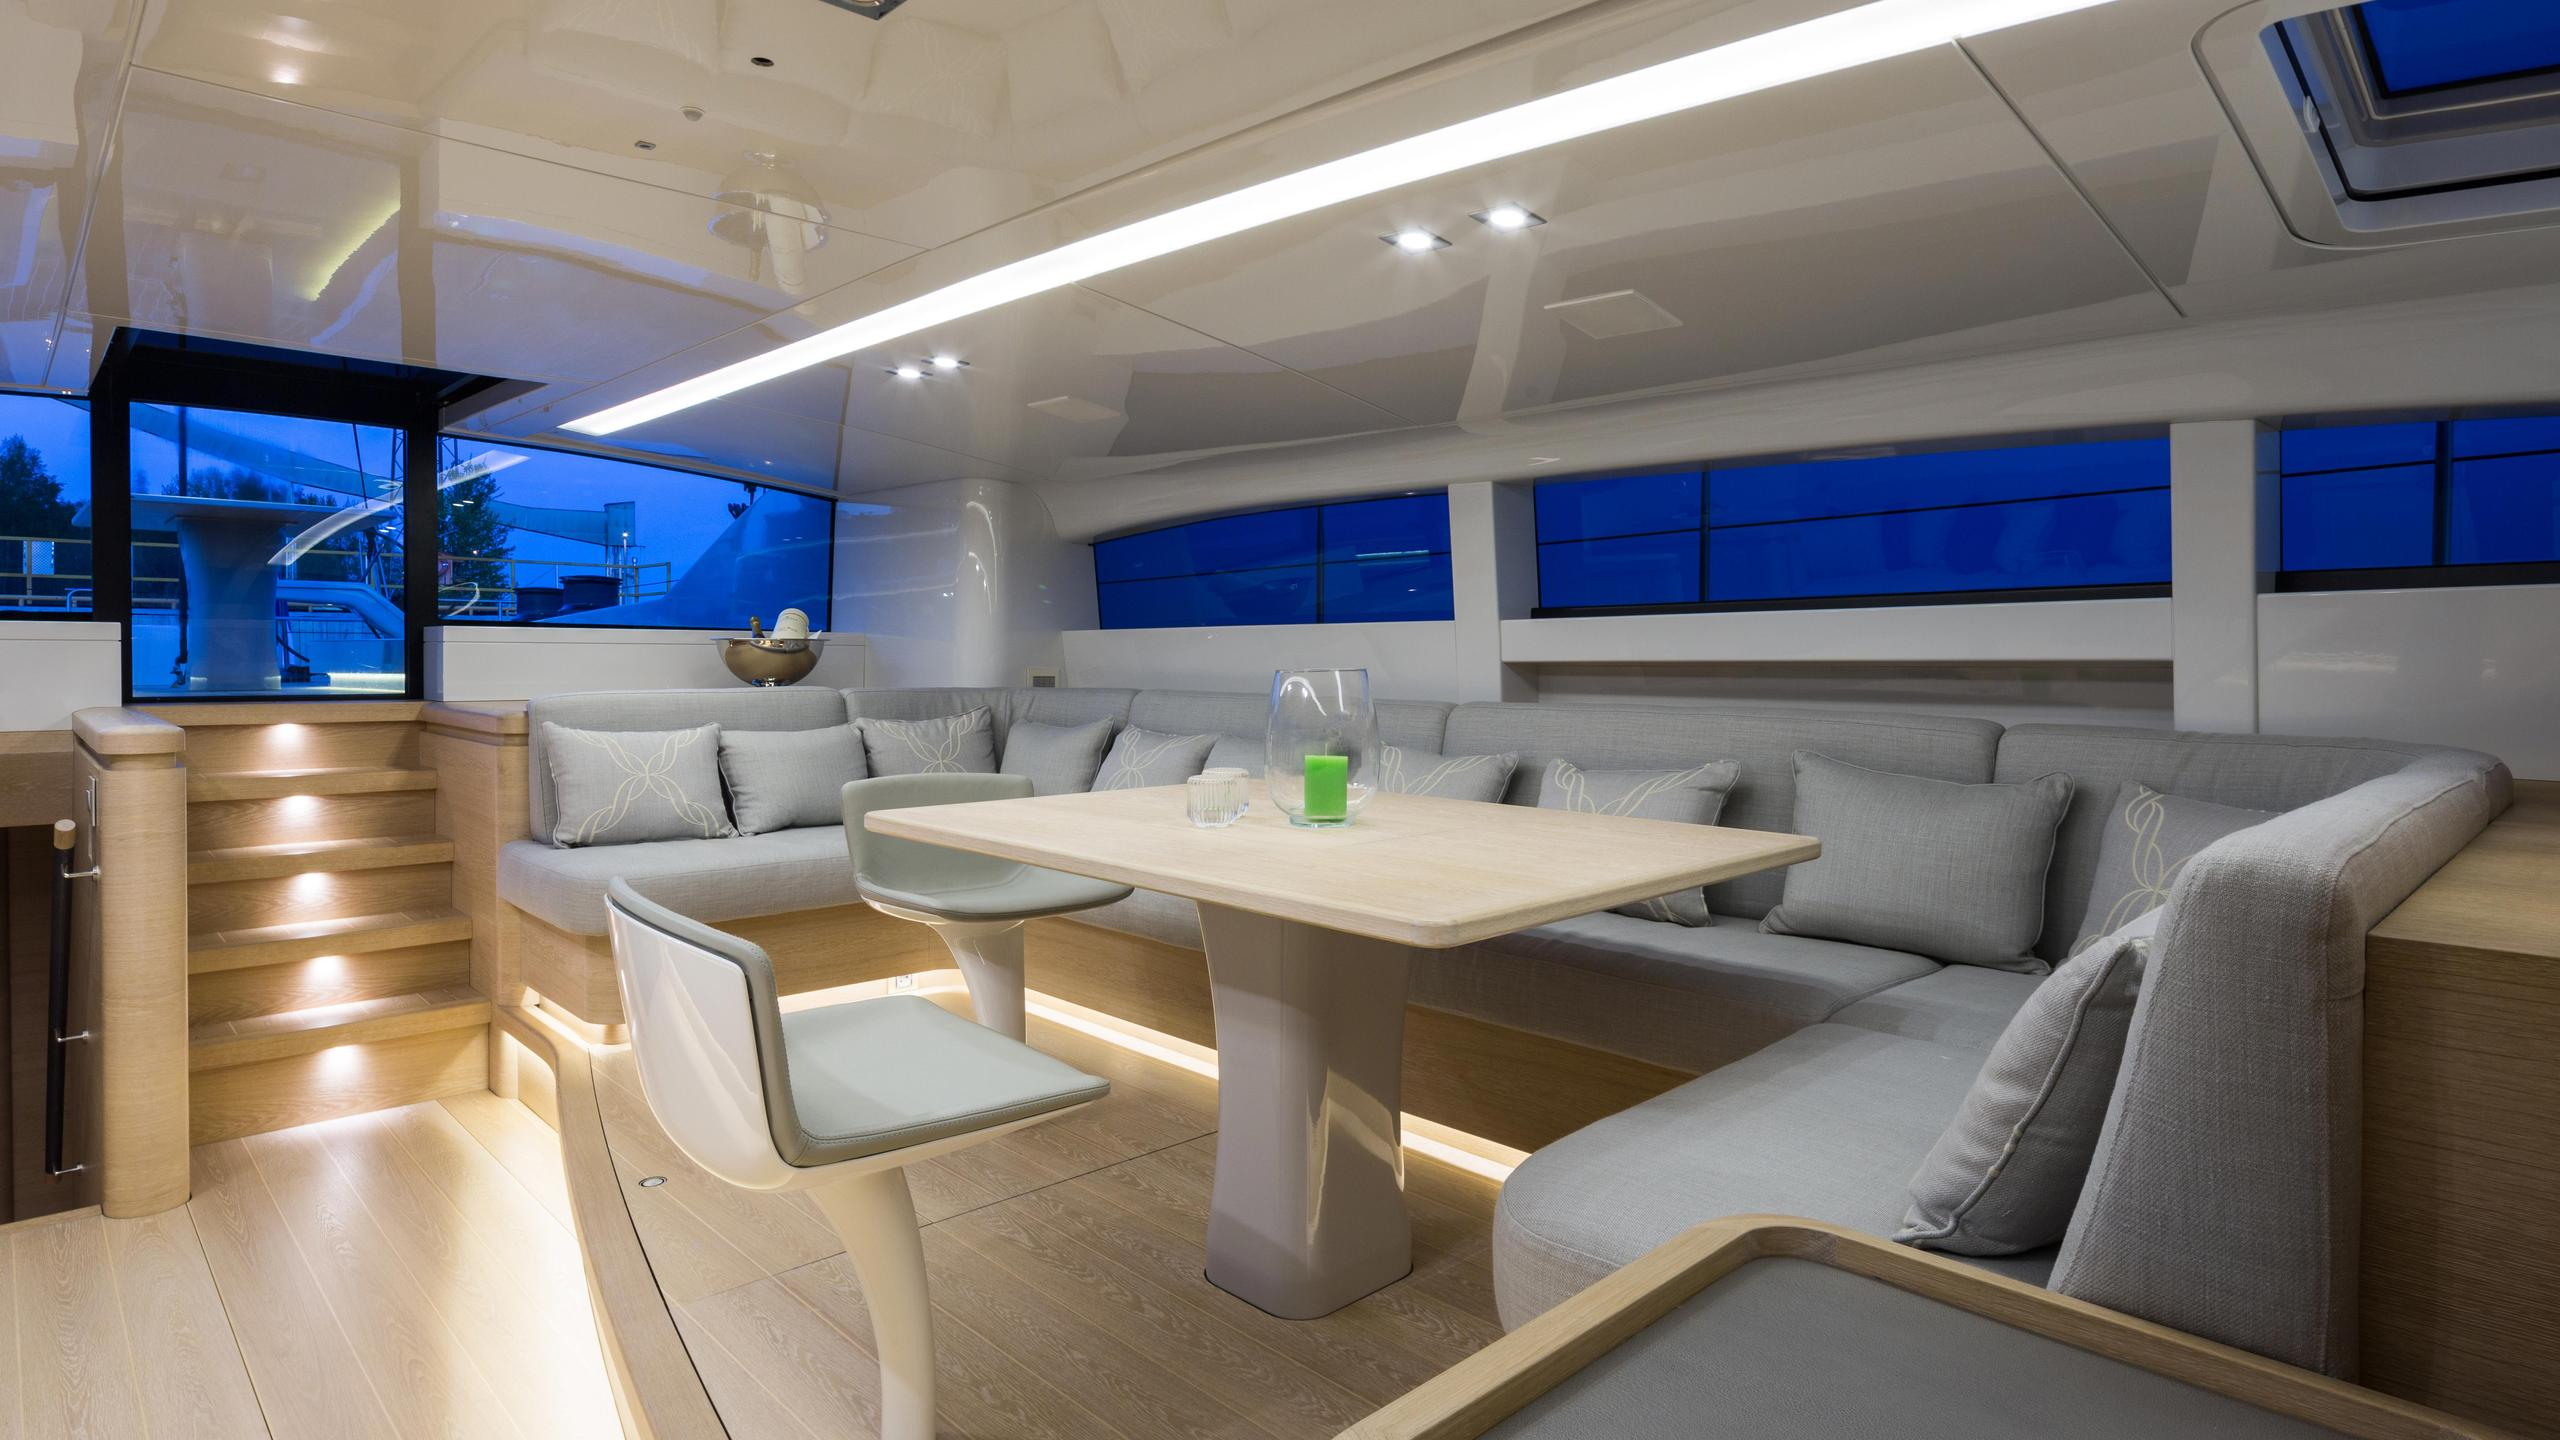 Winwin-sailing-yacht-baltic-2014-33m-dining-room